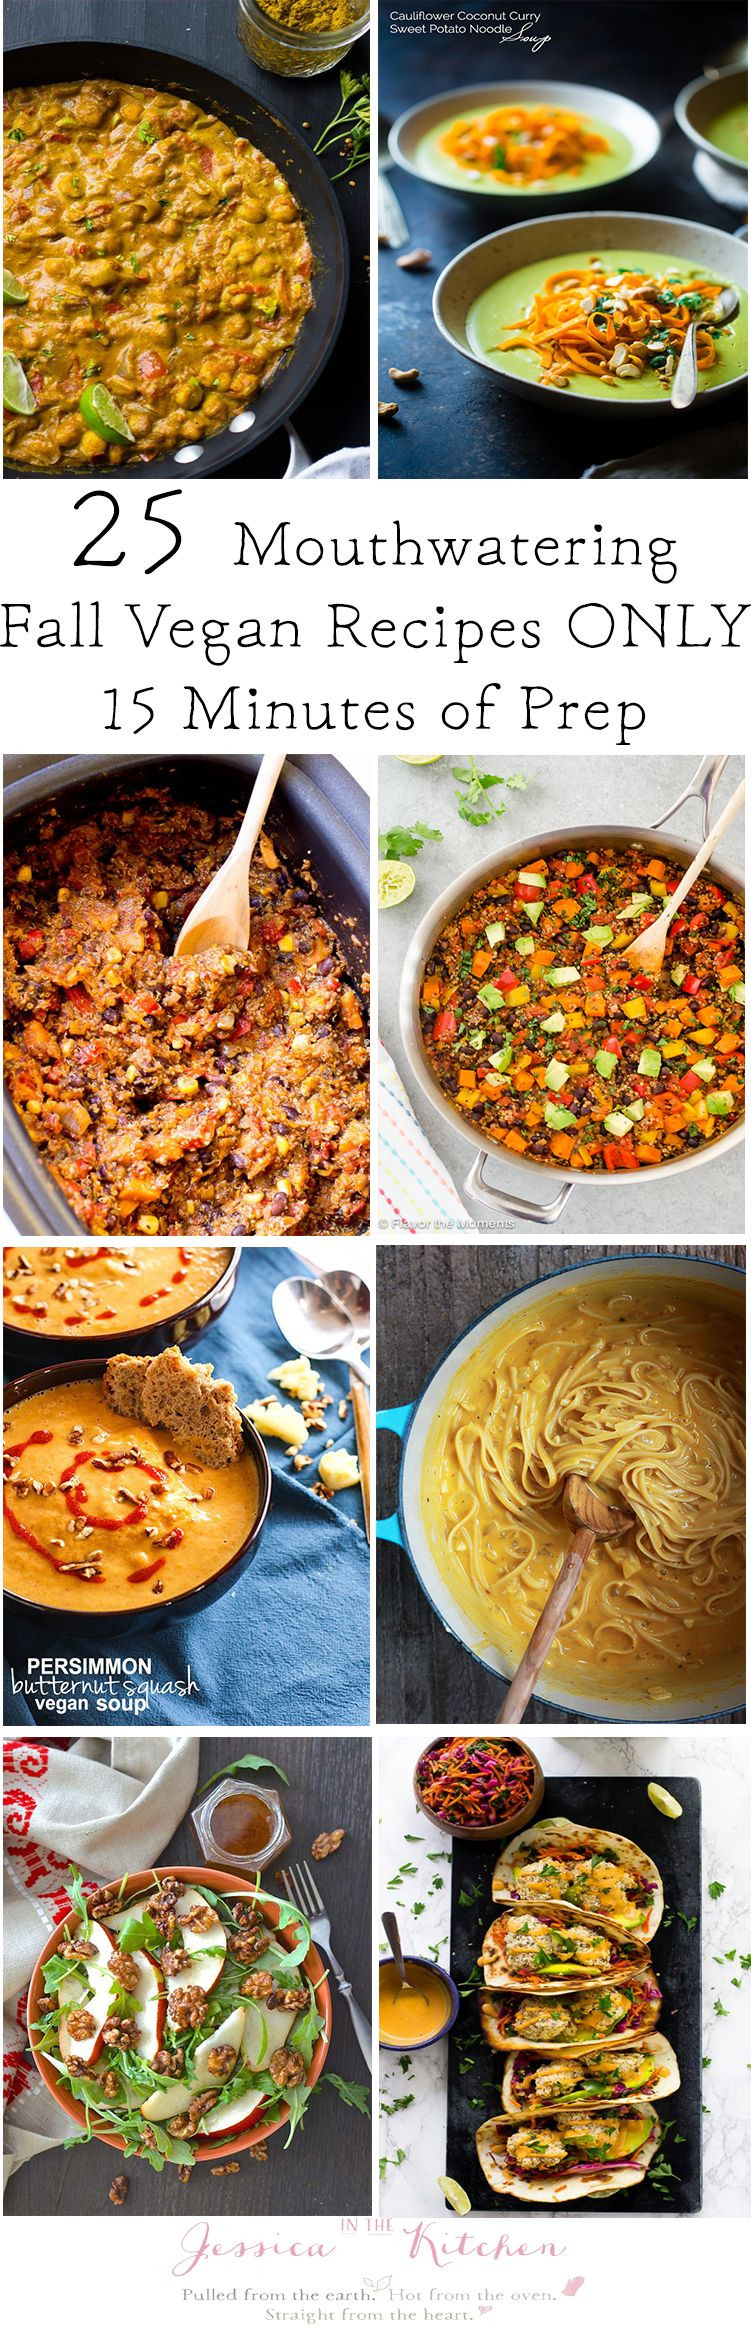 Vegetarian Fall Dinner Recipes  25 Mouthwatering Fall Vegan Dinner Recipes You Can Prep in